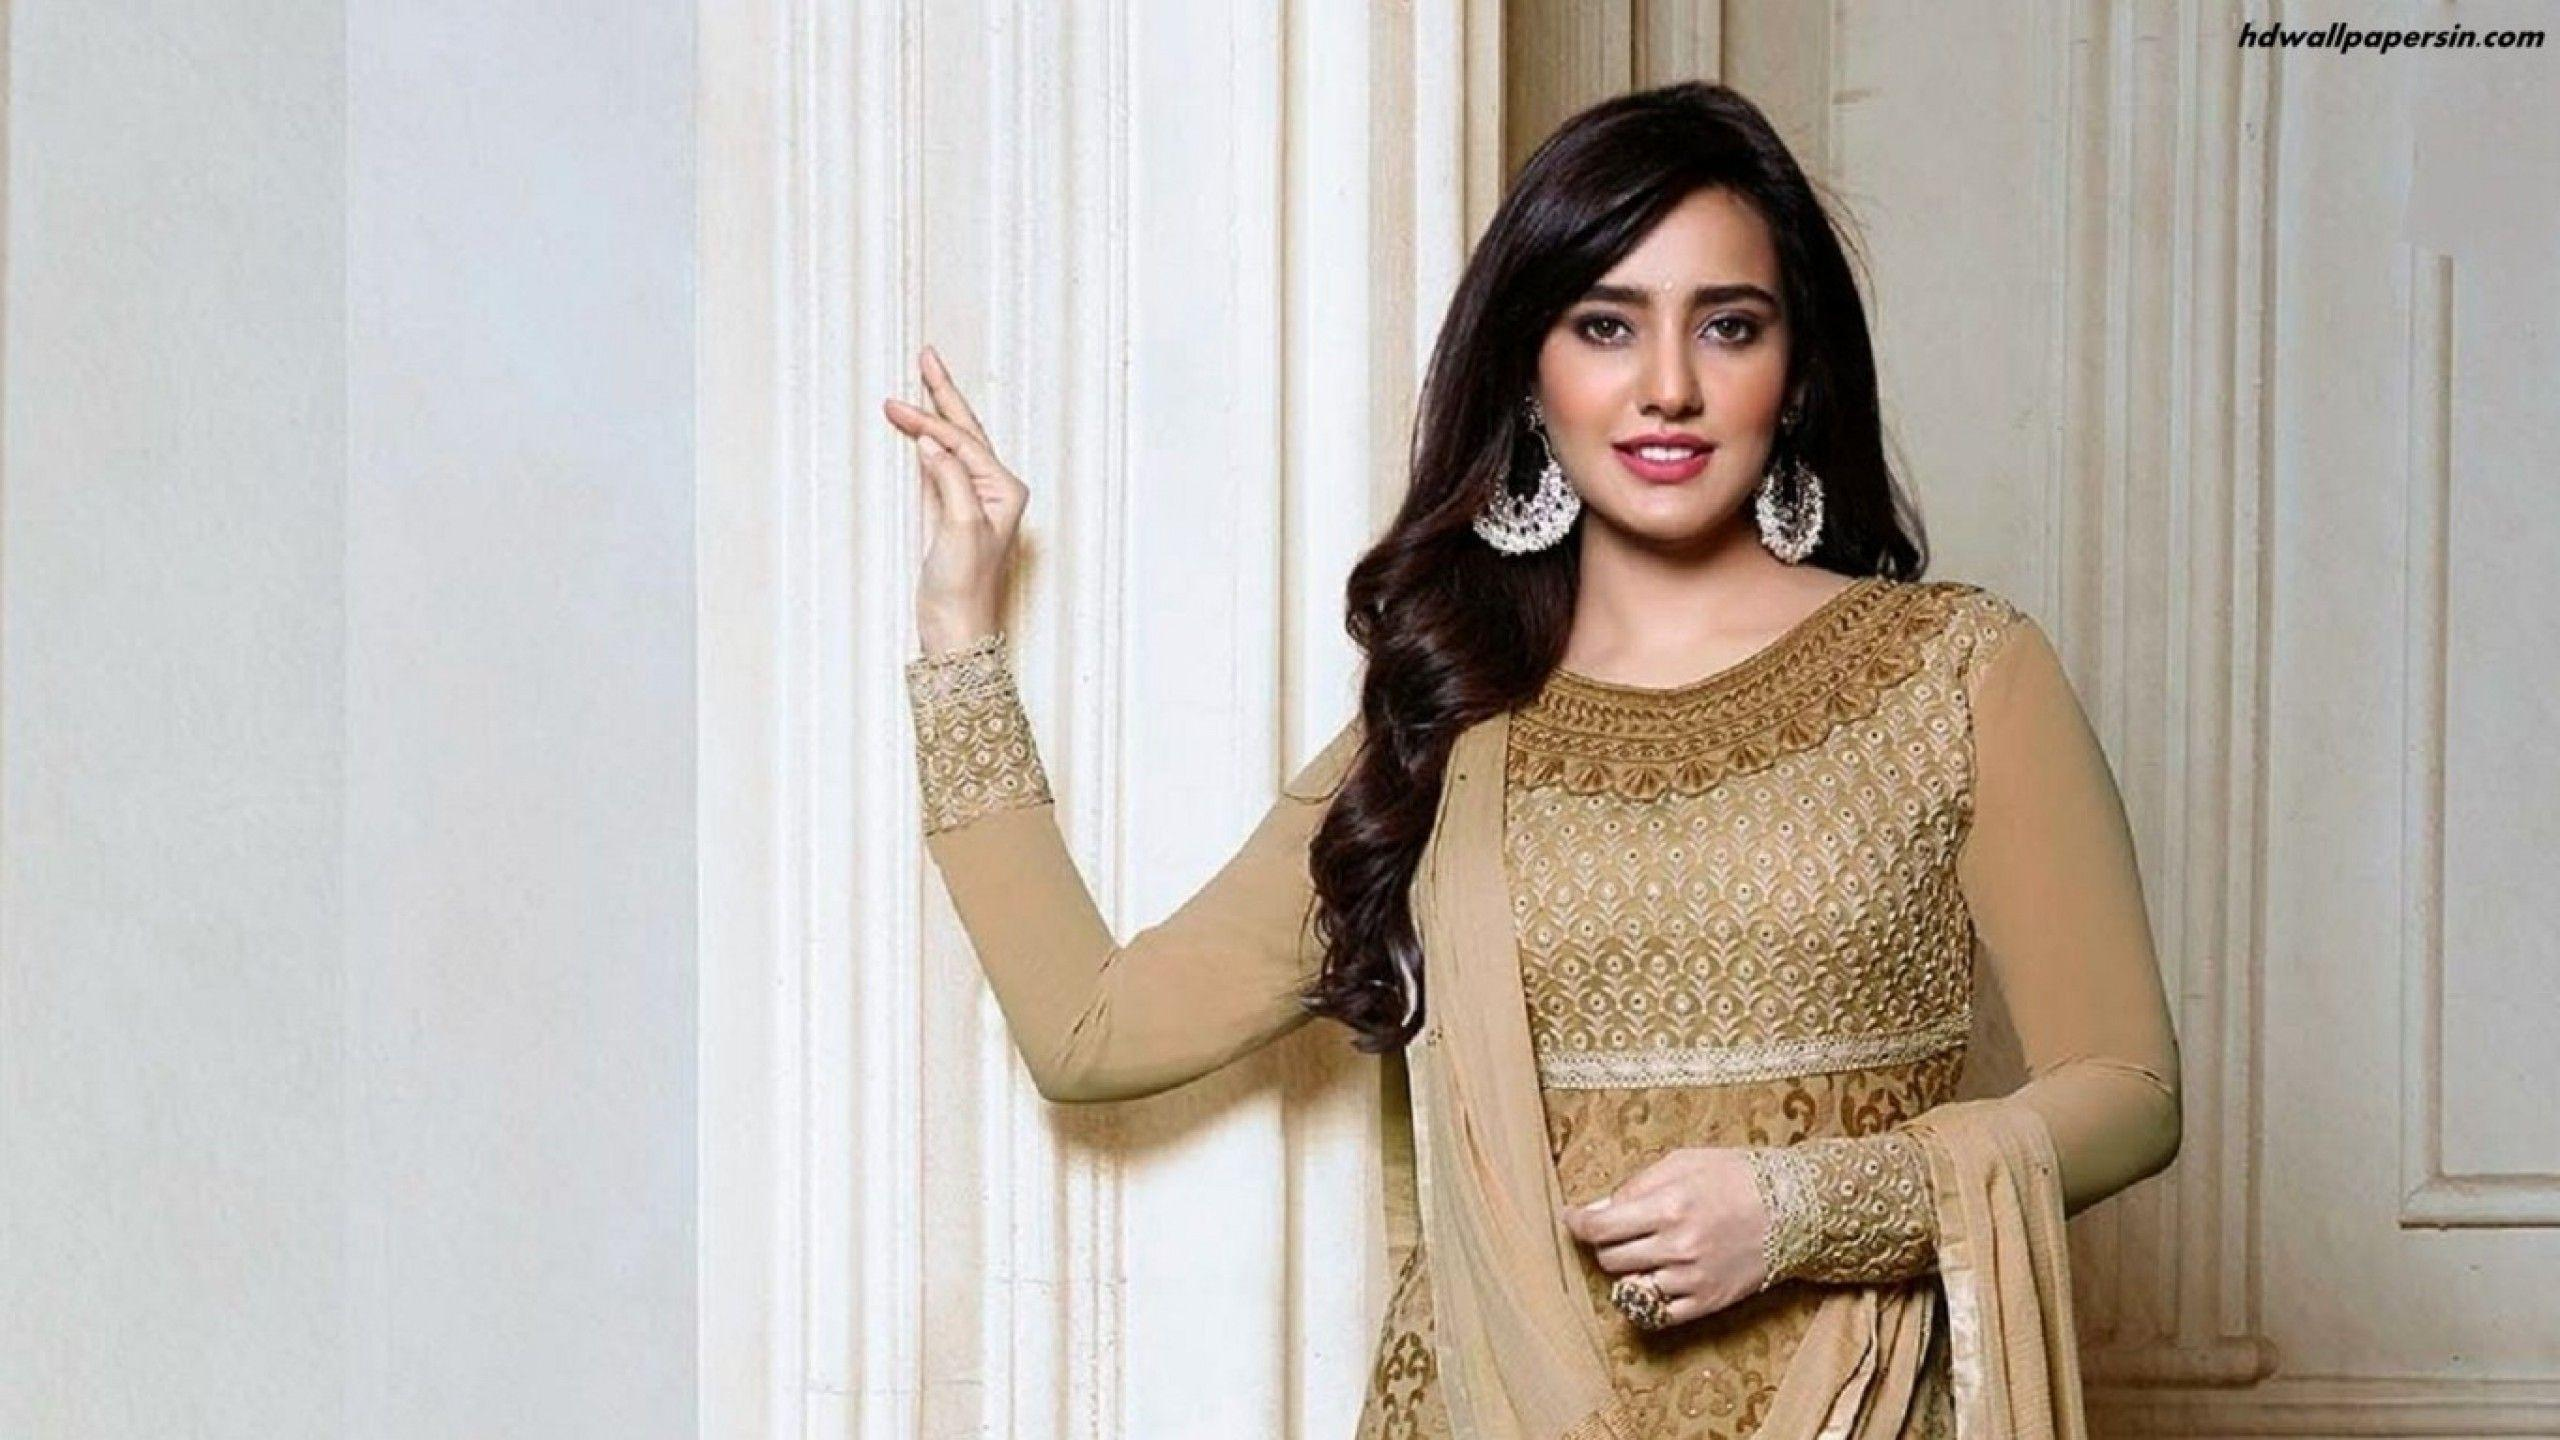 Latest Bollywood Actress Wallpapers 2015 HD